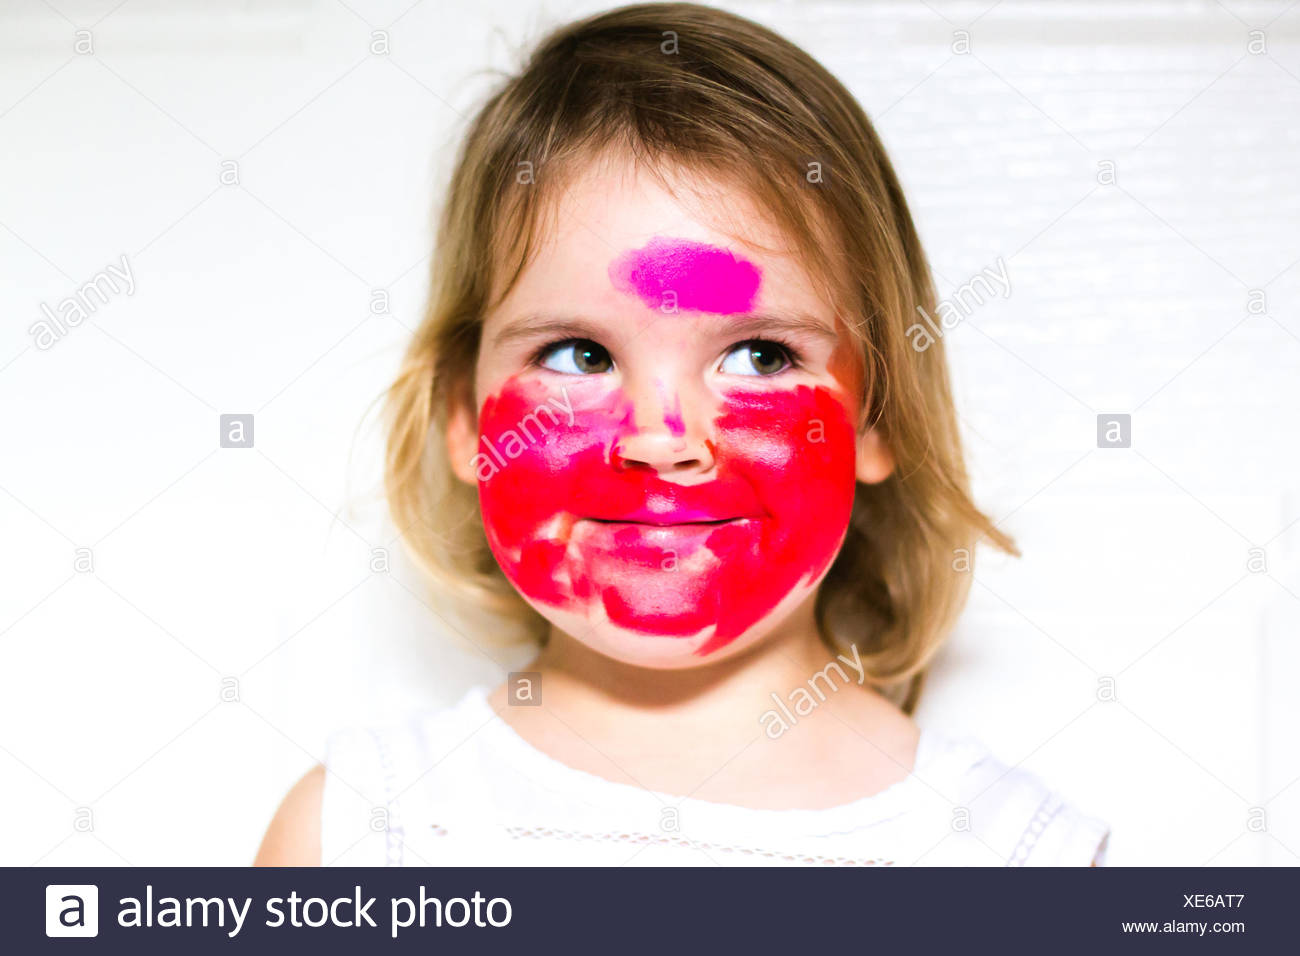 Portrait of a girl with lipstick all over her face - Stock Image